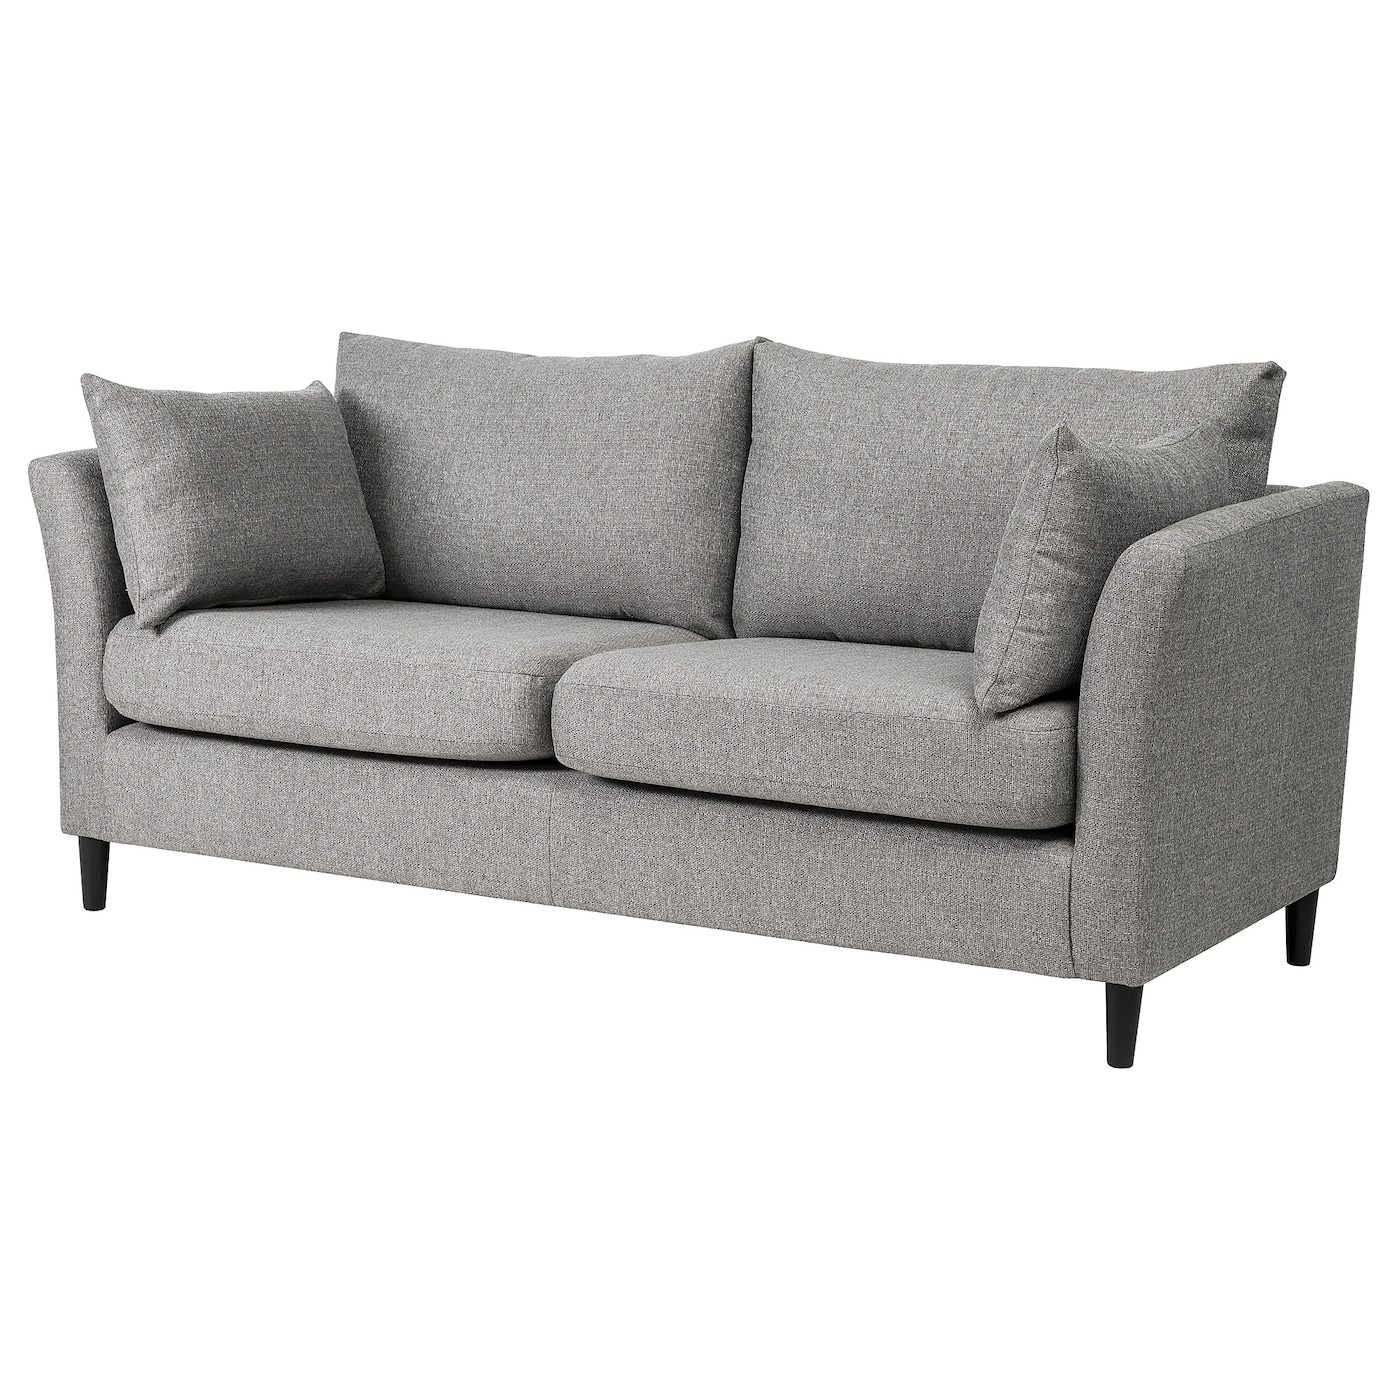 3 Seater Sofa Ikea